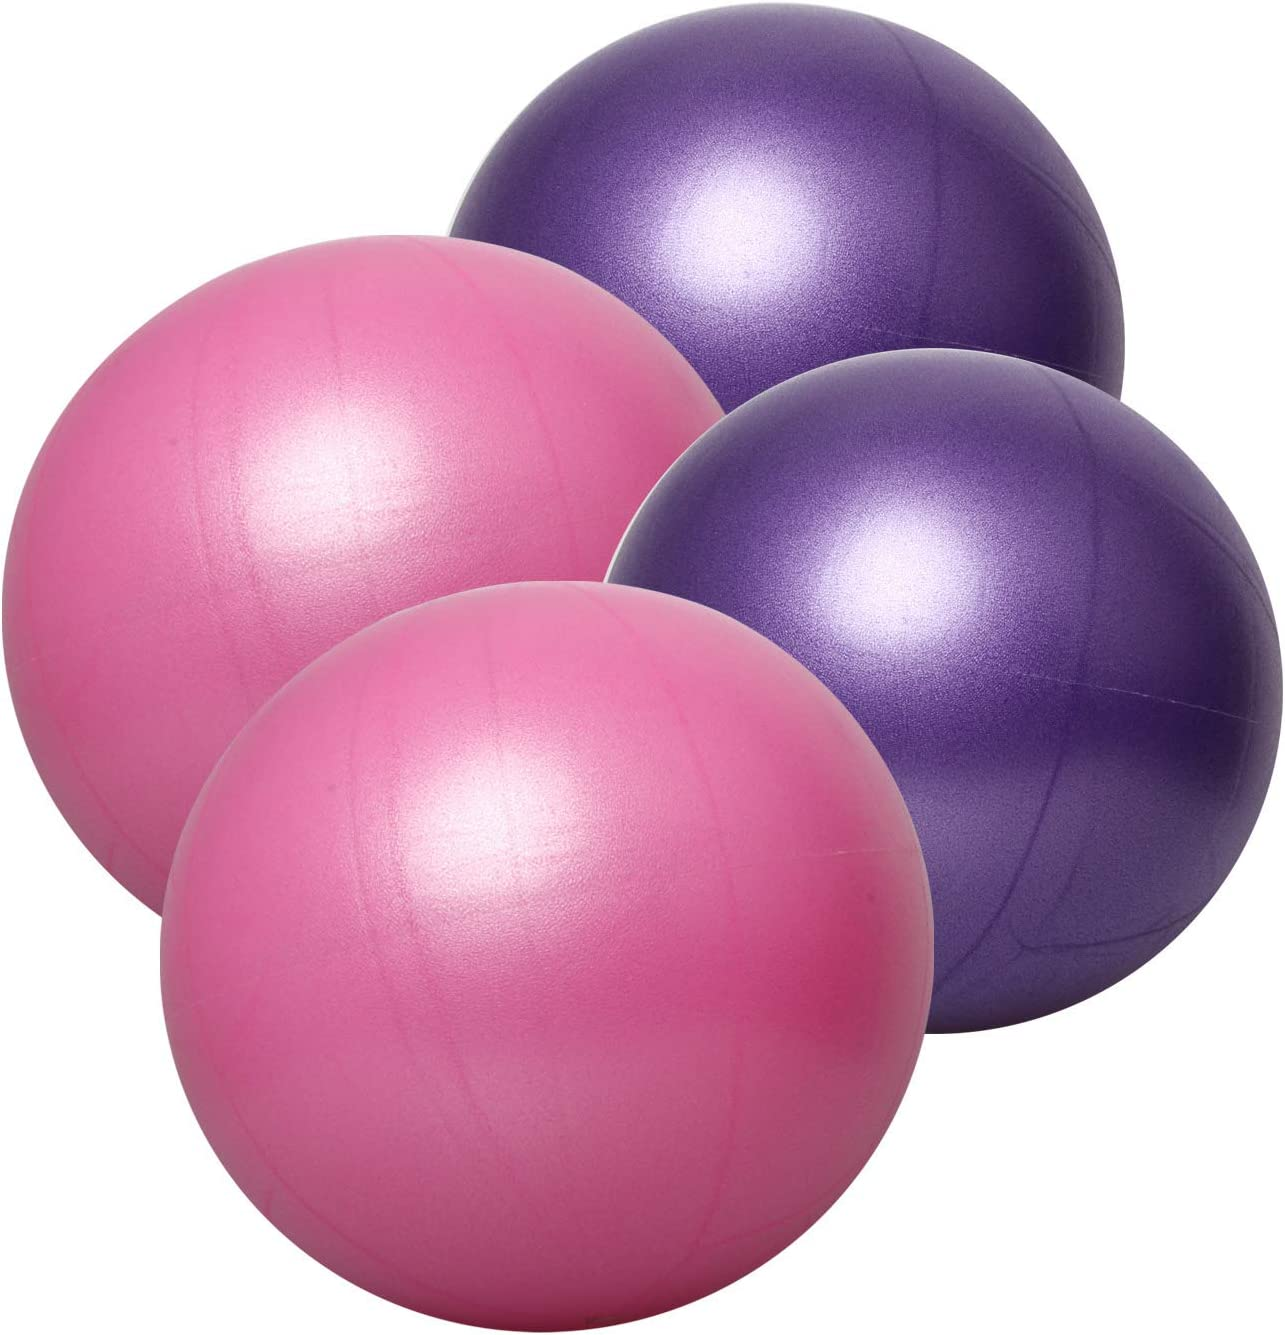 nononfish Exercise Ball Professional Grade Anti-Burst Fitness, Balance Ball for Pilates, Yoga, Birthing, Stability Gym Workout Training and Physical Therapy